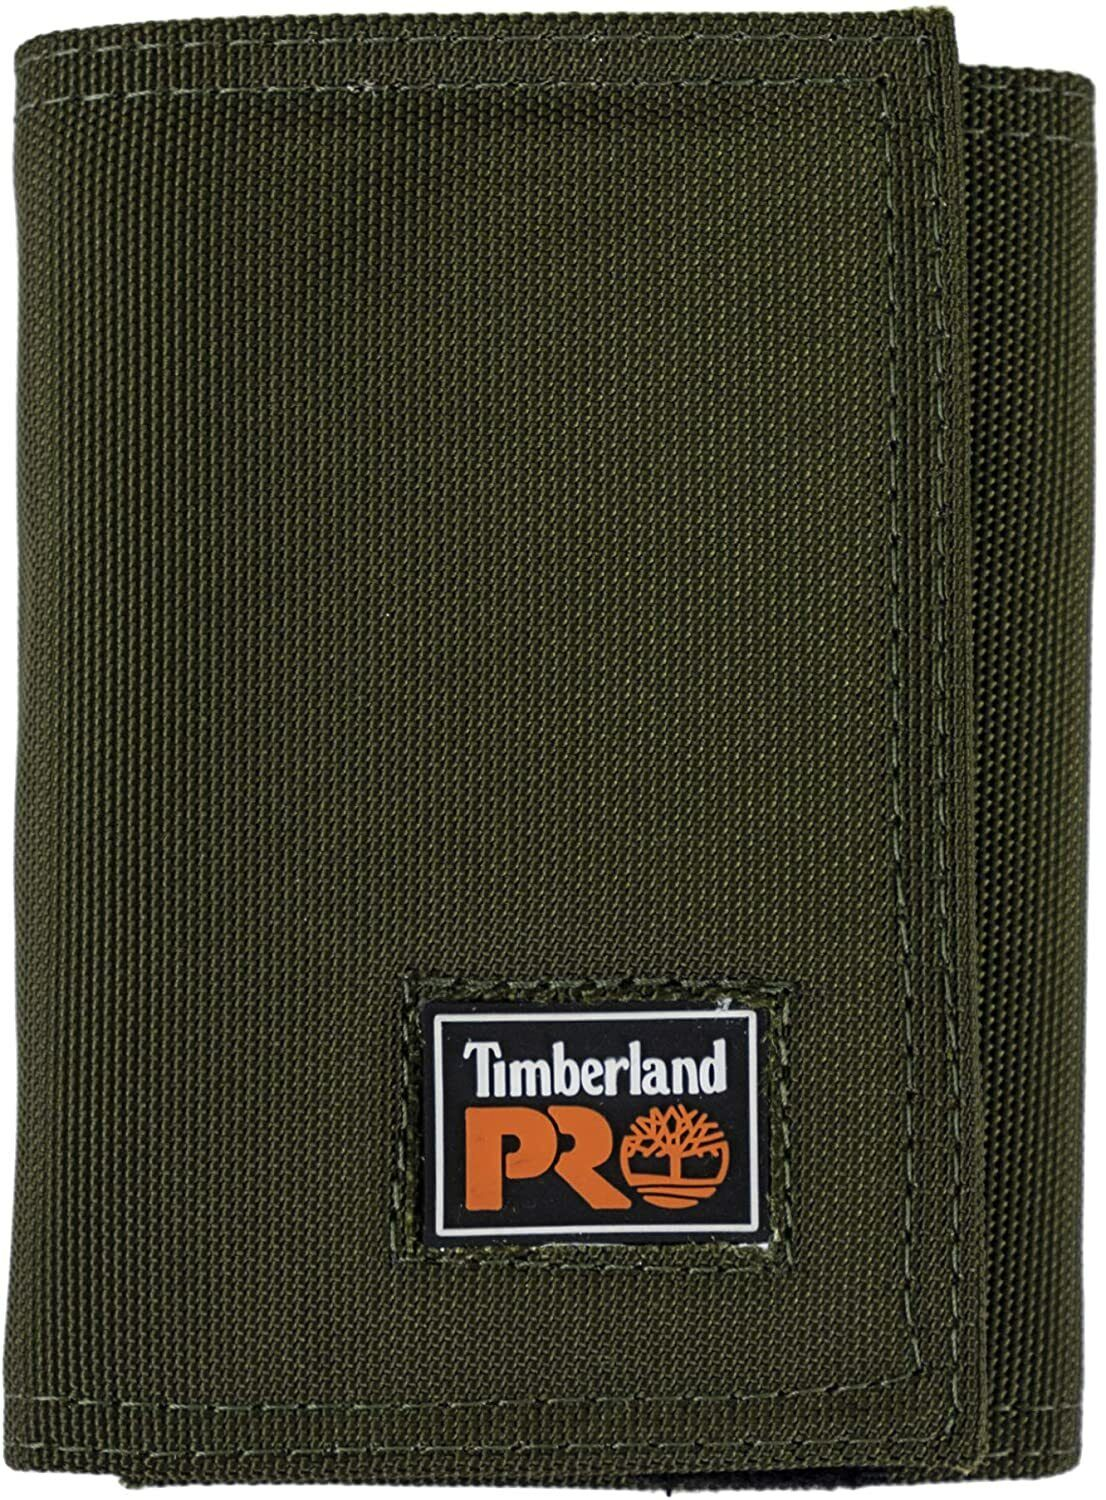 Timberland PRO Men's Cordura Nylon RFID Trifold Wallet with One Size, Olive